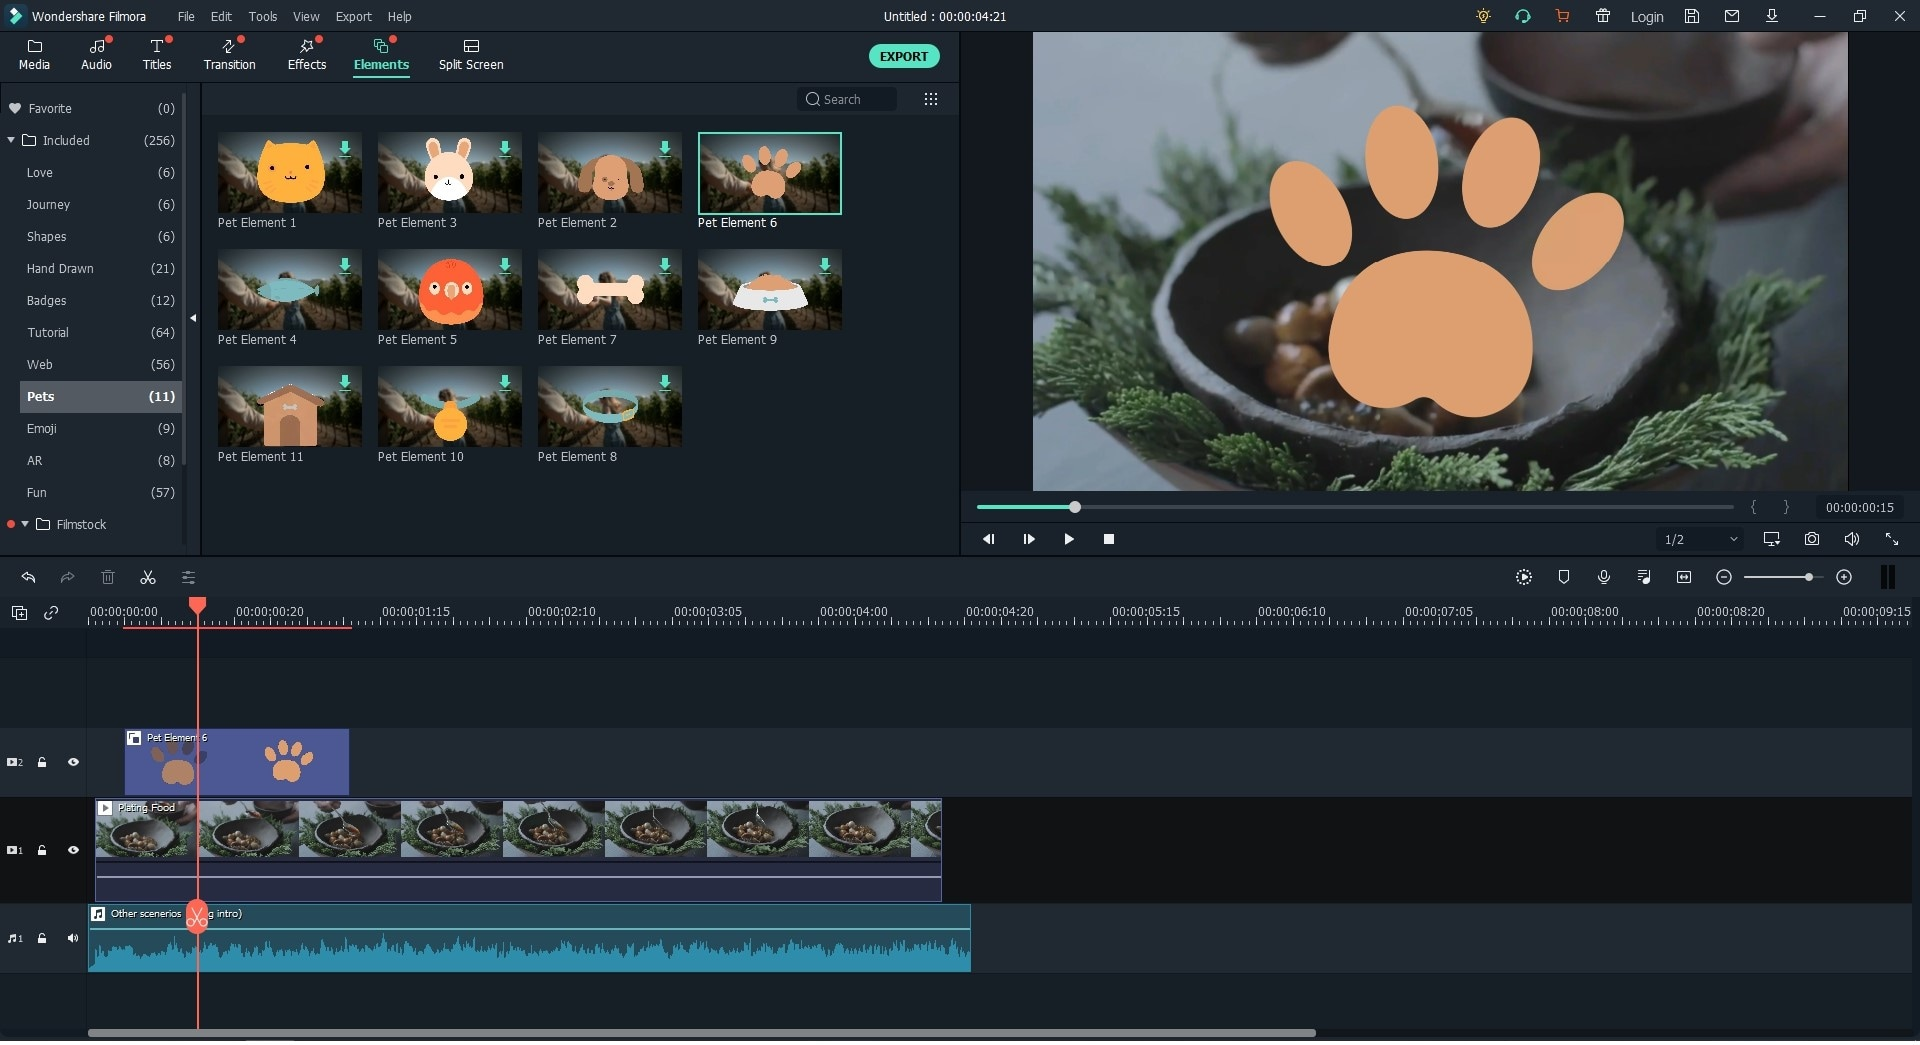 Basic Video Editor: Create and Edit Video in Easy Way